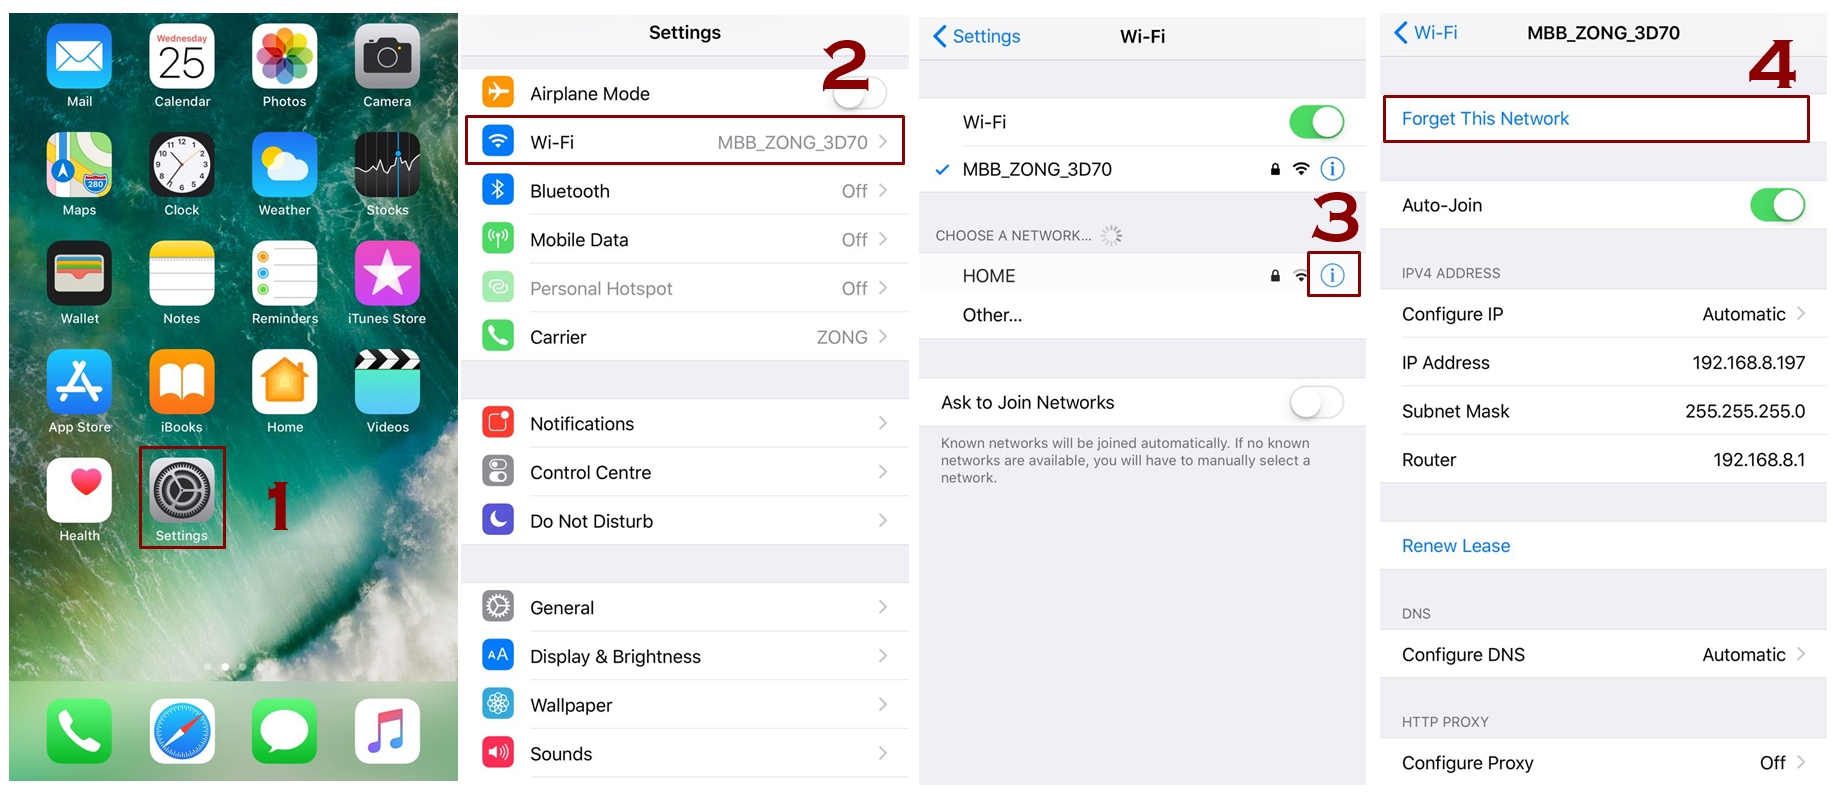 forget WiFi network in iPhone - iPhone Connected to WiFi But no Internet - How to Fix that